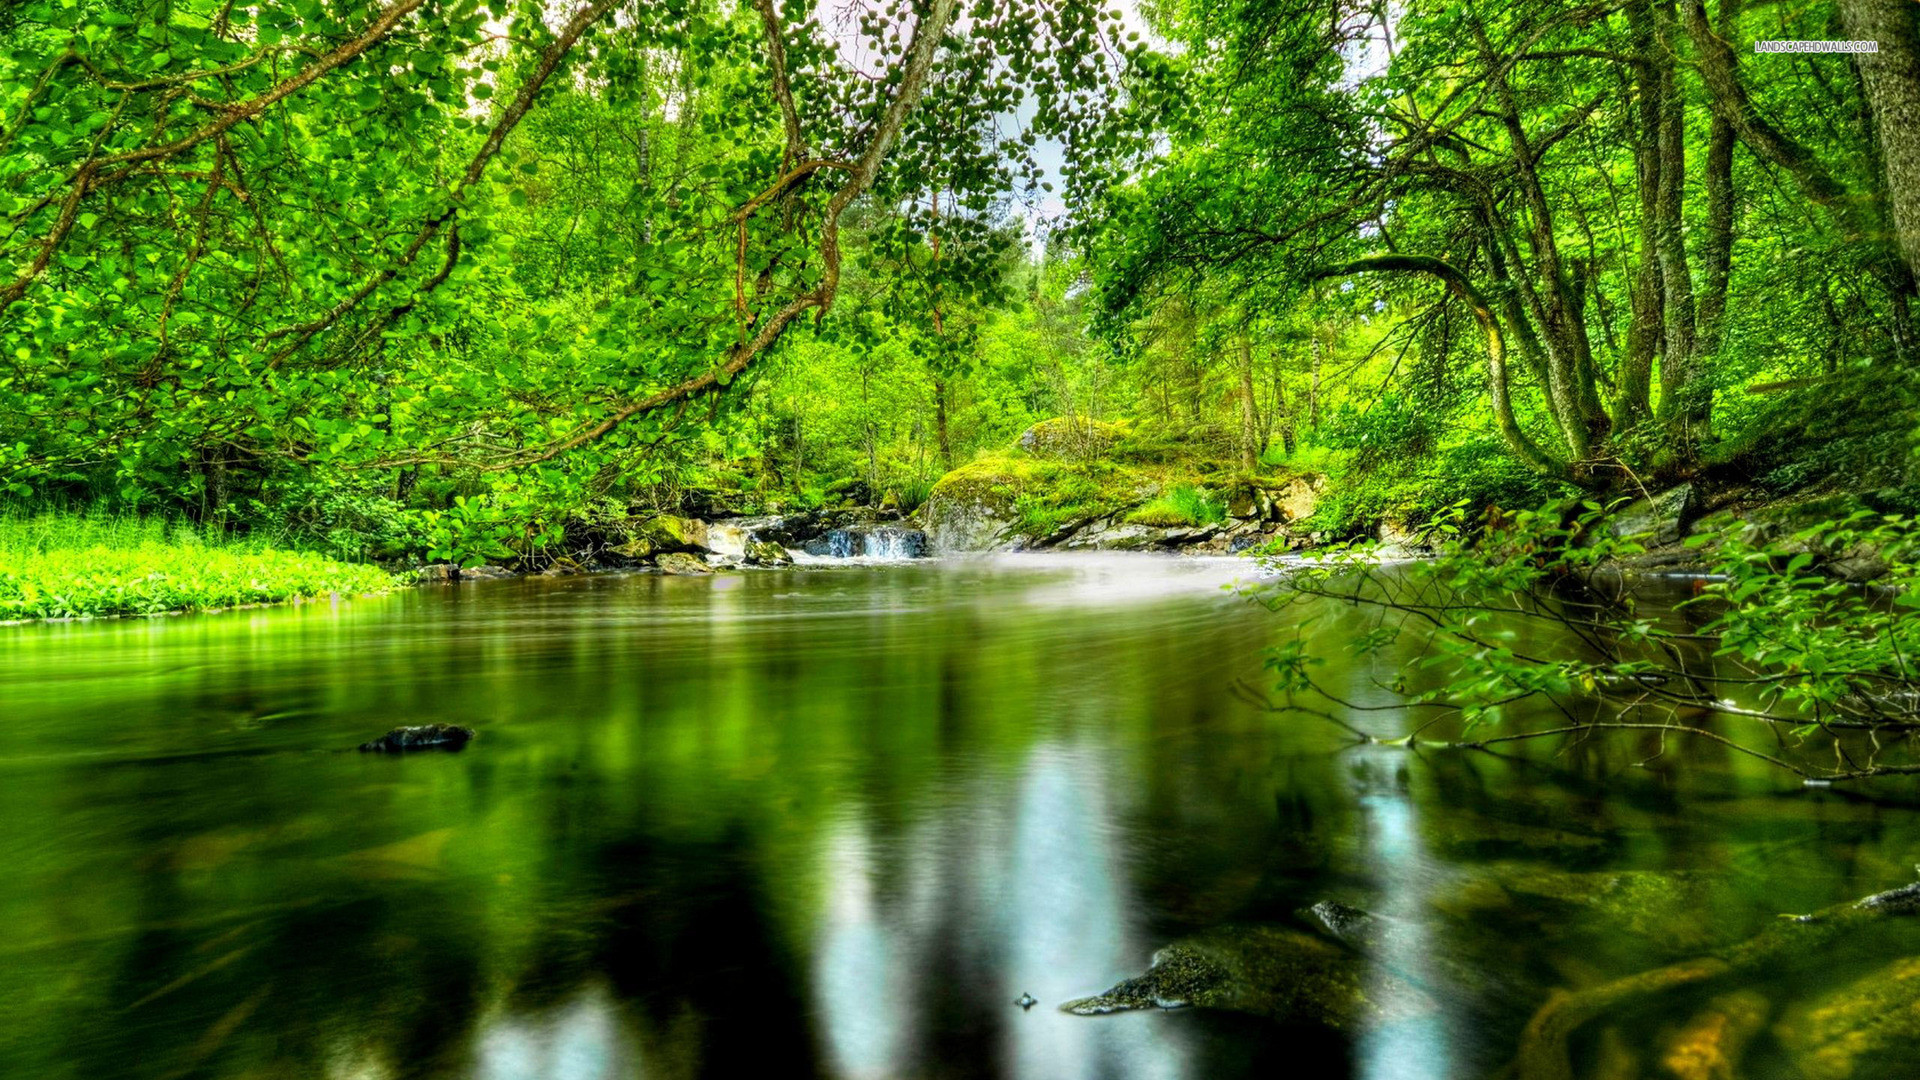 Rivers Forest River Bridge Nature Photos High Quality for HD